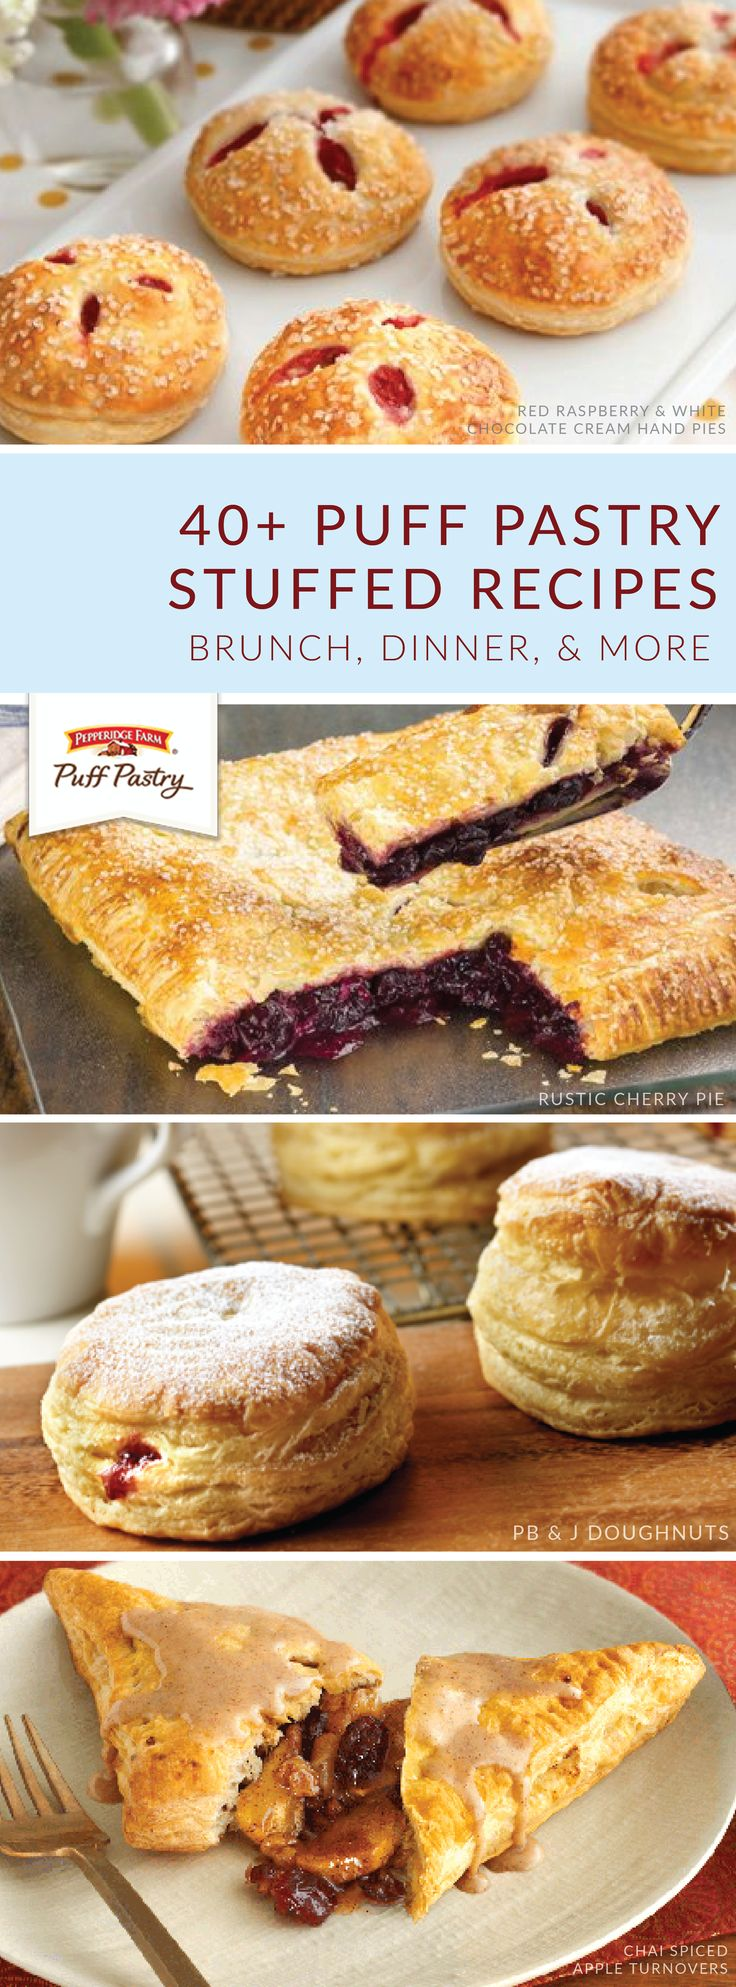 Whether it's morning, noon, or night, you can include these Pepperidge Farm® Puff Pastry Sheets stuffed recipes on your party menu. Tasty dishes like Spinach and Feta Mini Calzones; Rustic Cherry Pie; and Sausage, Pepper, and Onion Mini Bundles are made to be shared with friends.